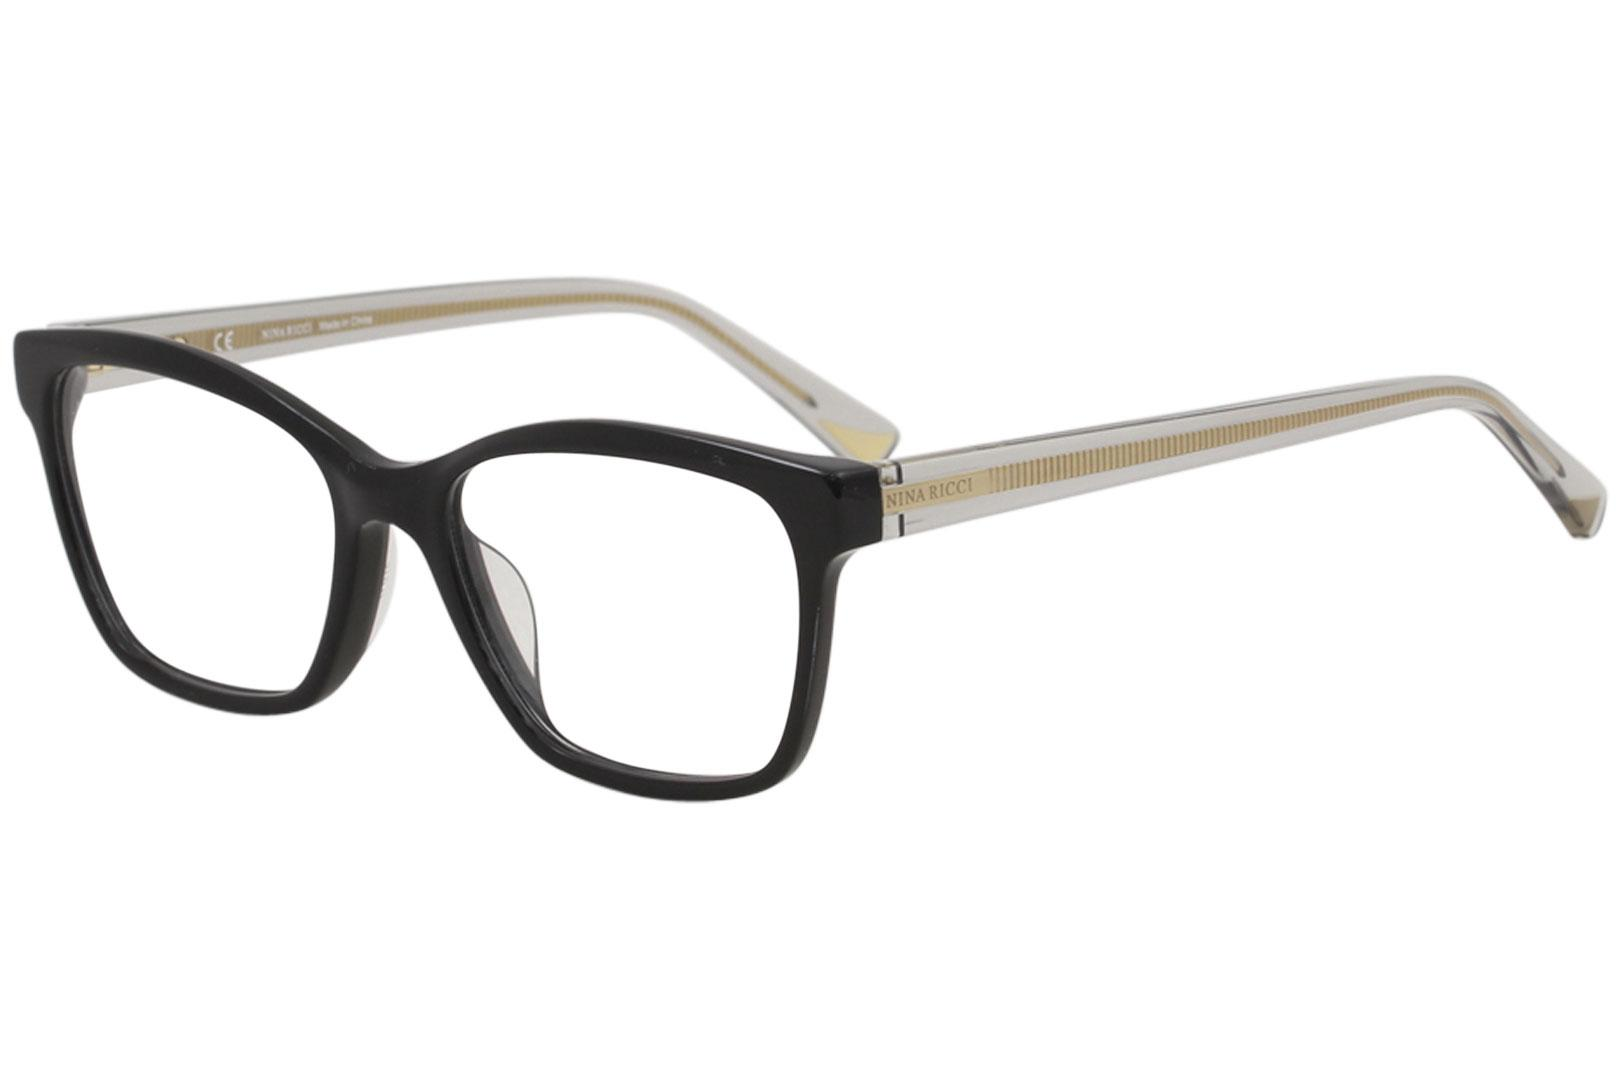 Image of Nina Ricci Eyeglasses VNR071 VNR/071 0700 Black Full Rim Optical Frame 51mm - Shiny Black   0700 - Lens 51 Bridge 17 Temple 140mm